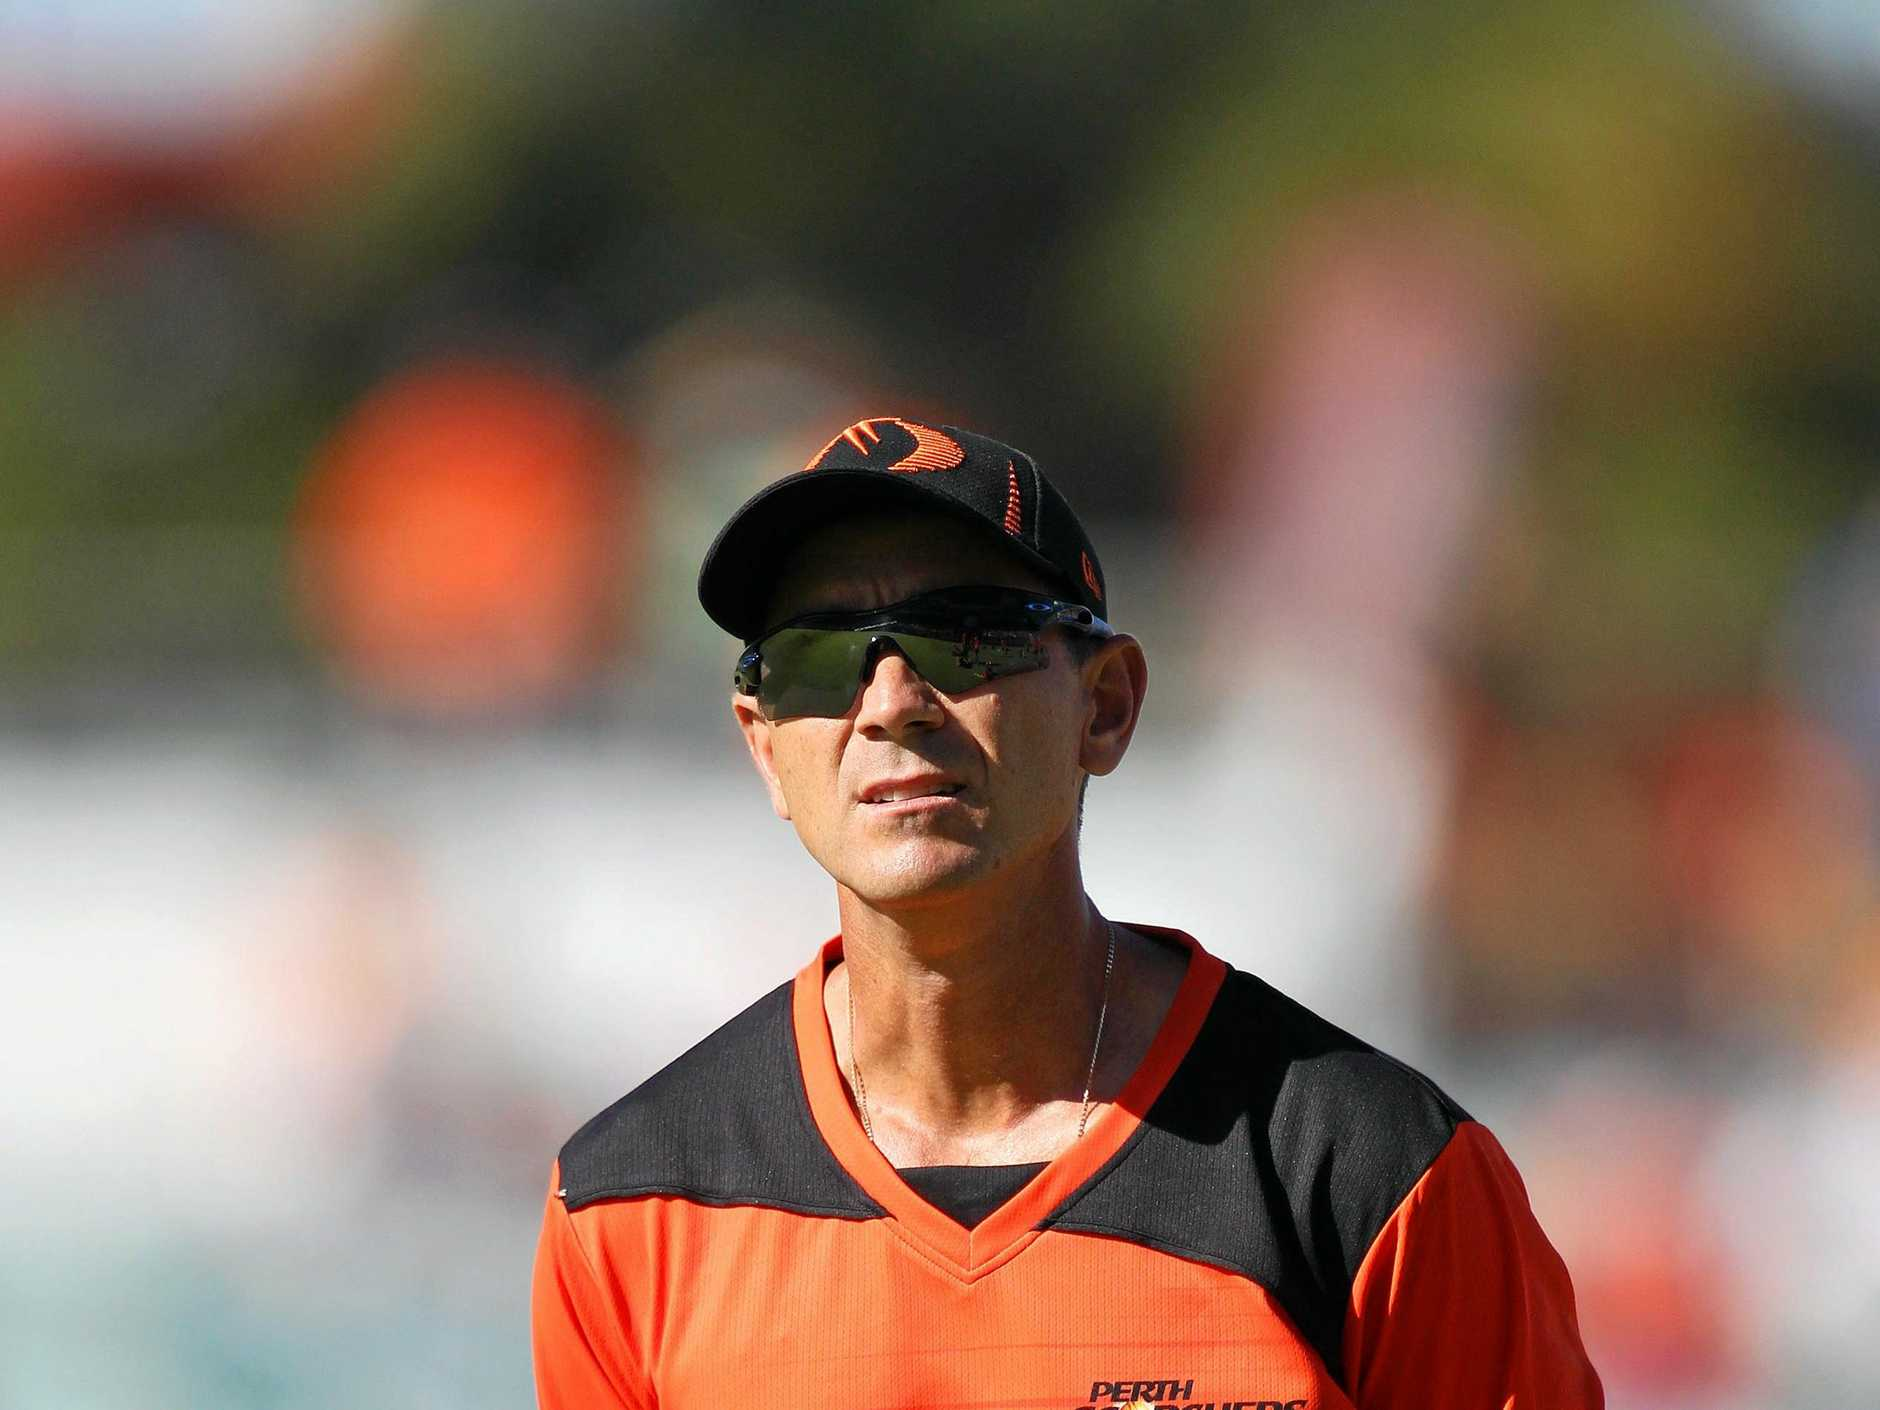 Scorchers Coach Justin Langer pre-match. Big Bash League T-20 final between the Perth Scorchers and Brisbane Heat at the WACA in Perth. Saturday, Jan. 19, 2013. (AAP Image/Lincoln Baker). NO ARCHIVING, IMAGES TO BE USED FOR NEWS REPORTING ONLY, NO COMMERCIAL USE WHATSOEVER NO USE IN BOOKS WITHOUT PRIOR WRITTEN CONSENT FROM AAP.